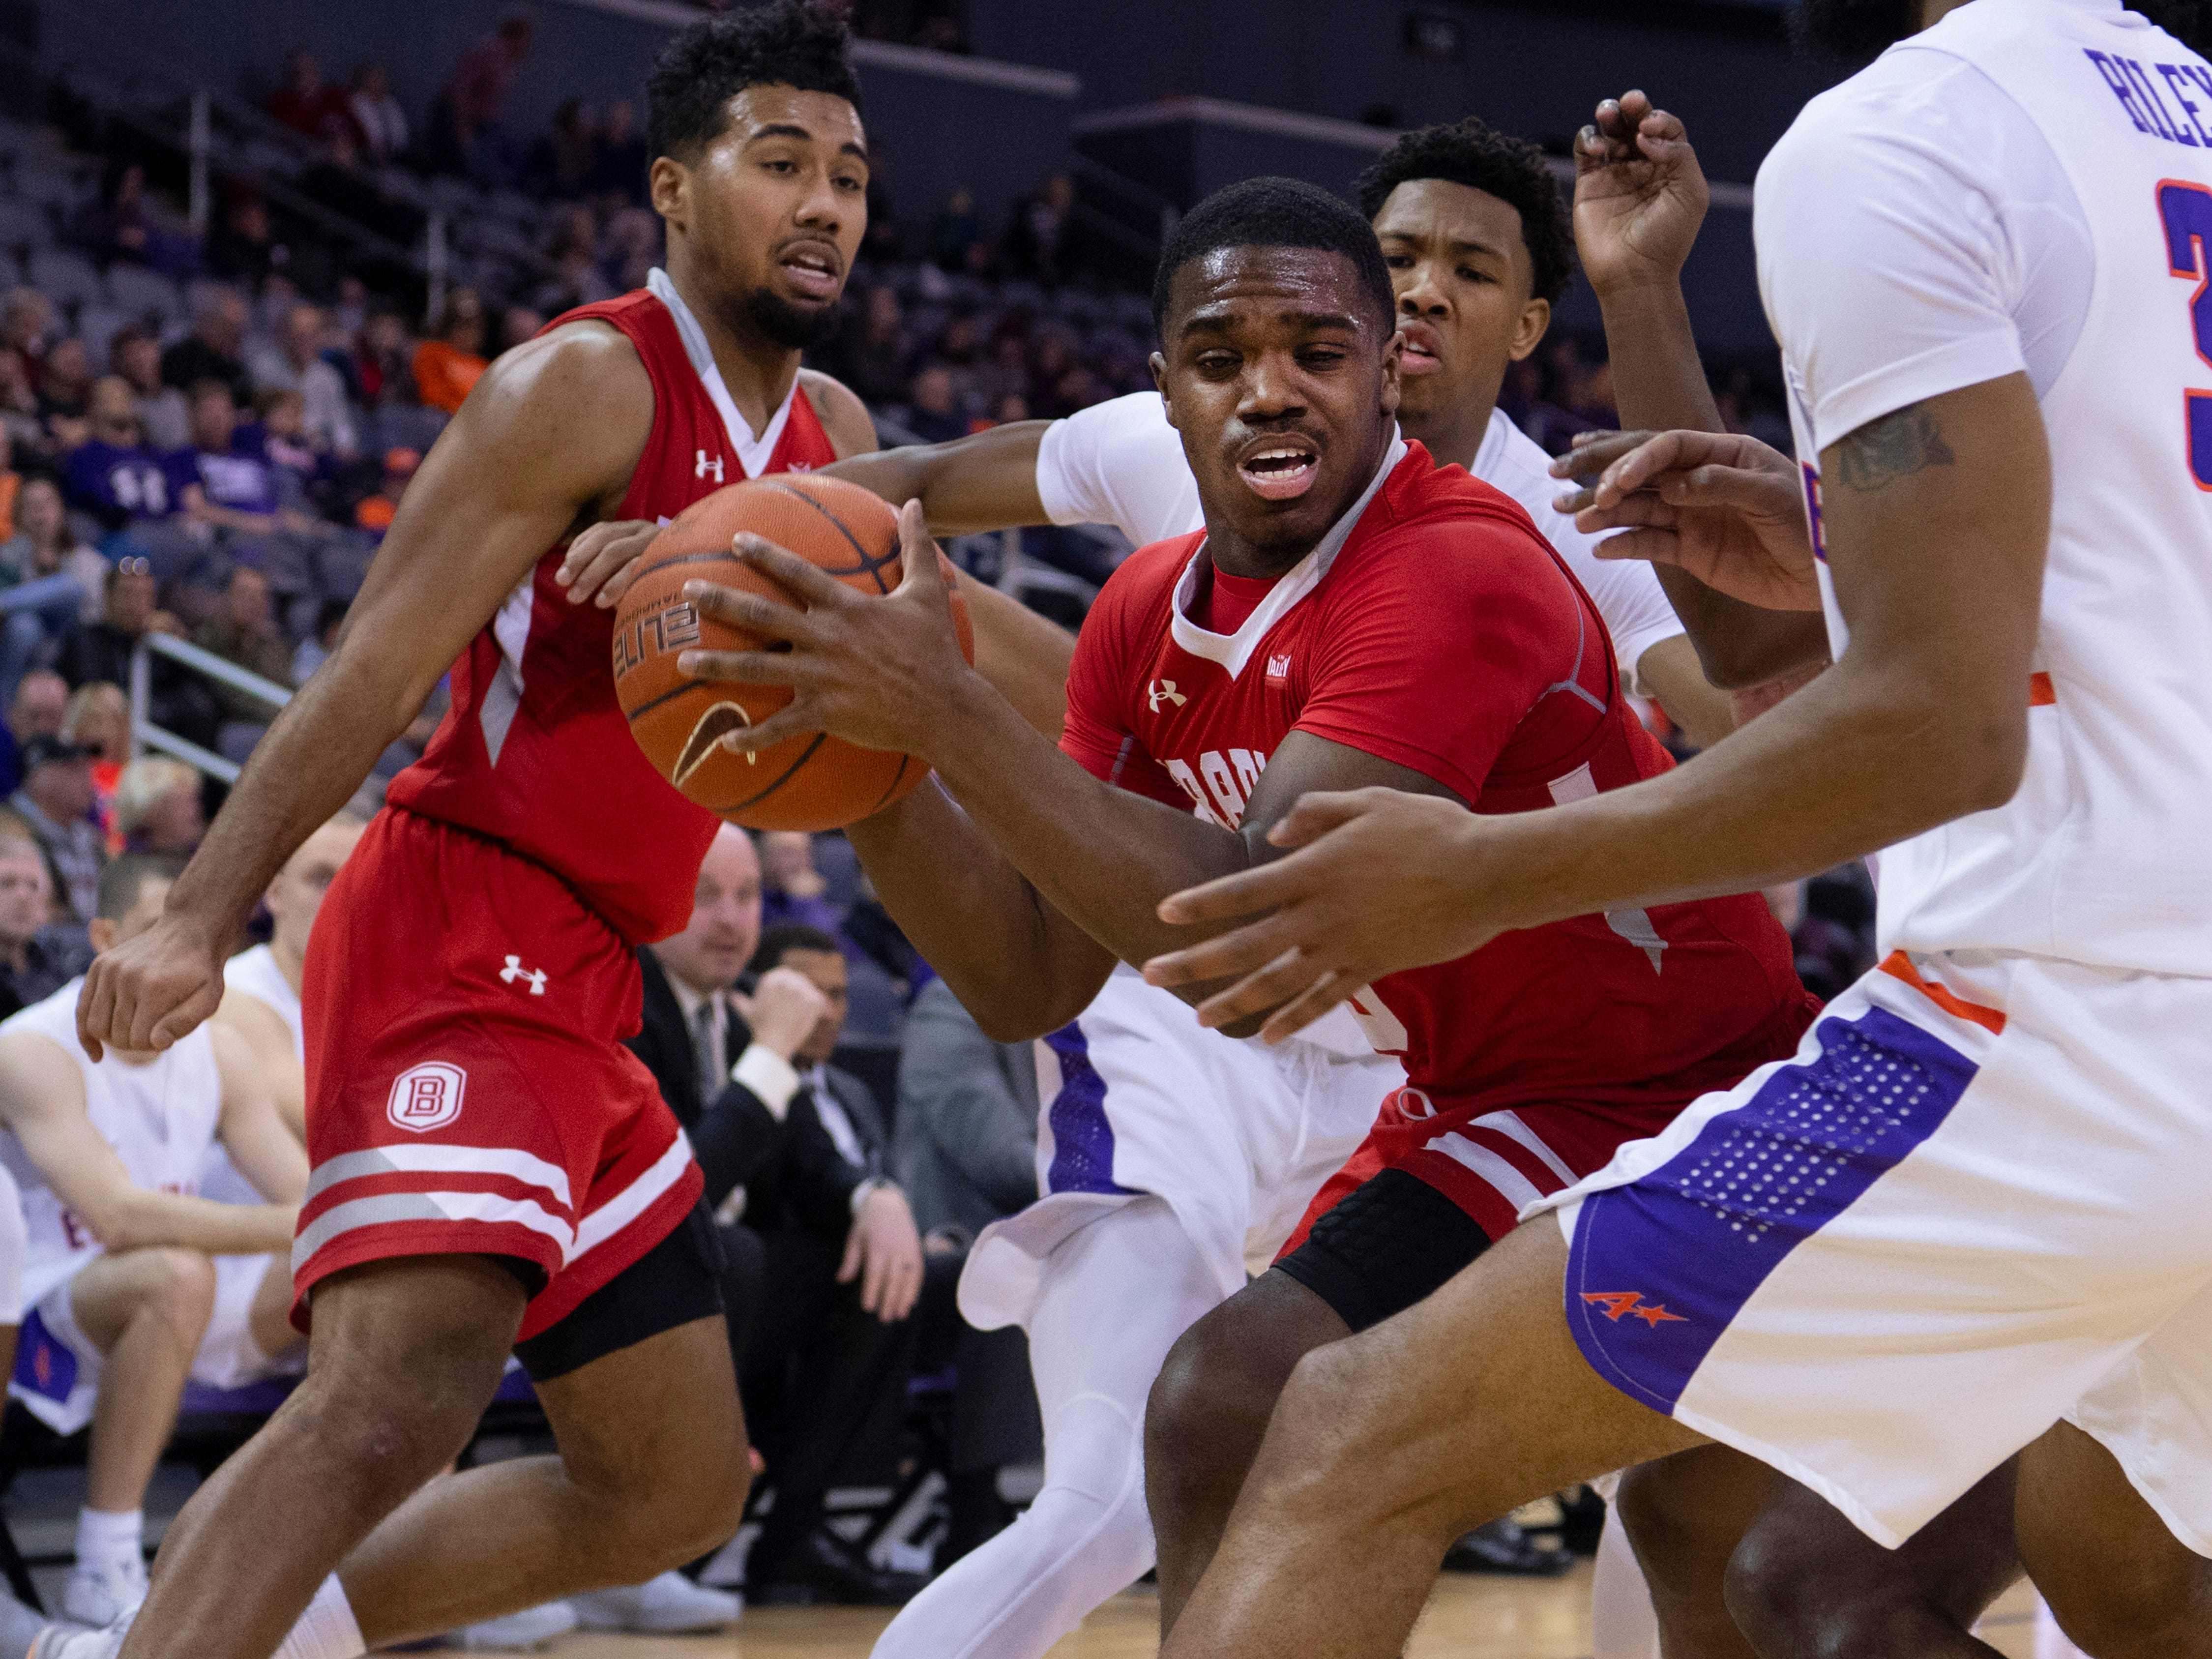 Bradley's Darrell Brown (5) is pressured by Evansville's defense during their game at the Ford Center Wednesday night.